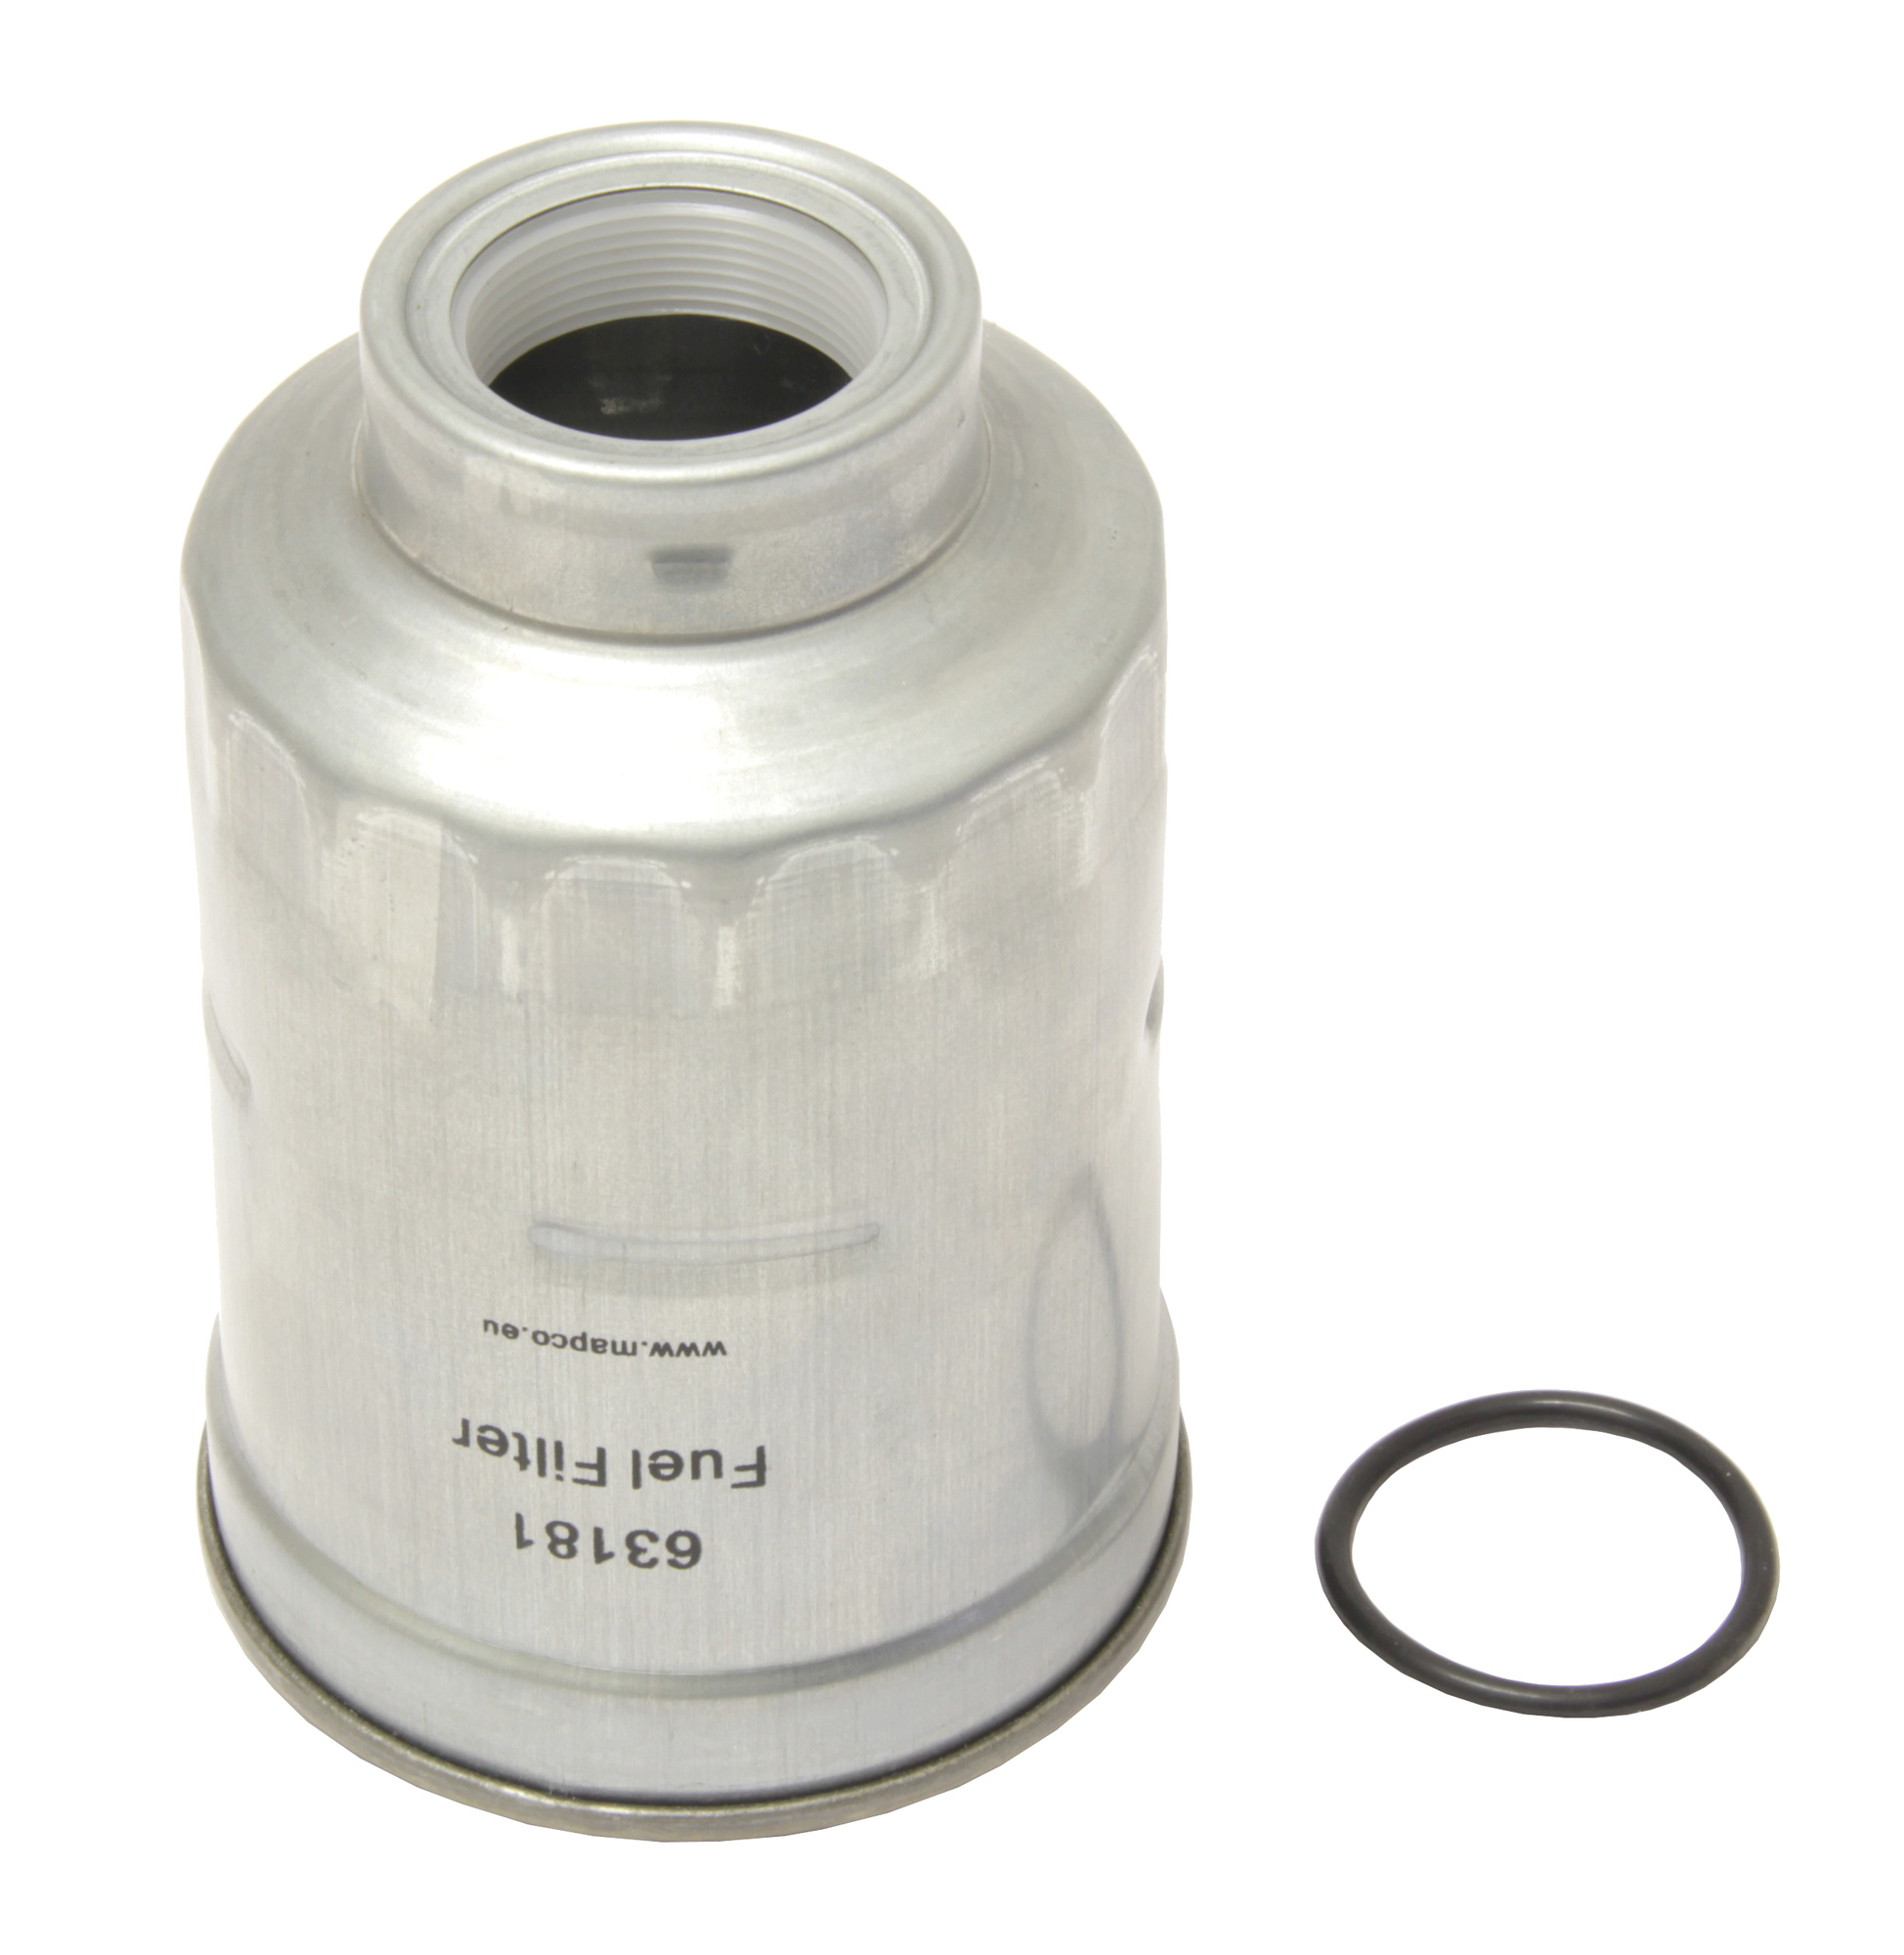 Mapco 63181 Fuel Filter 2013 Subaru Impreza Location